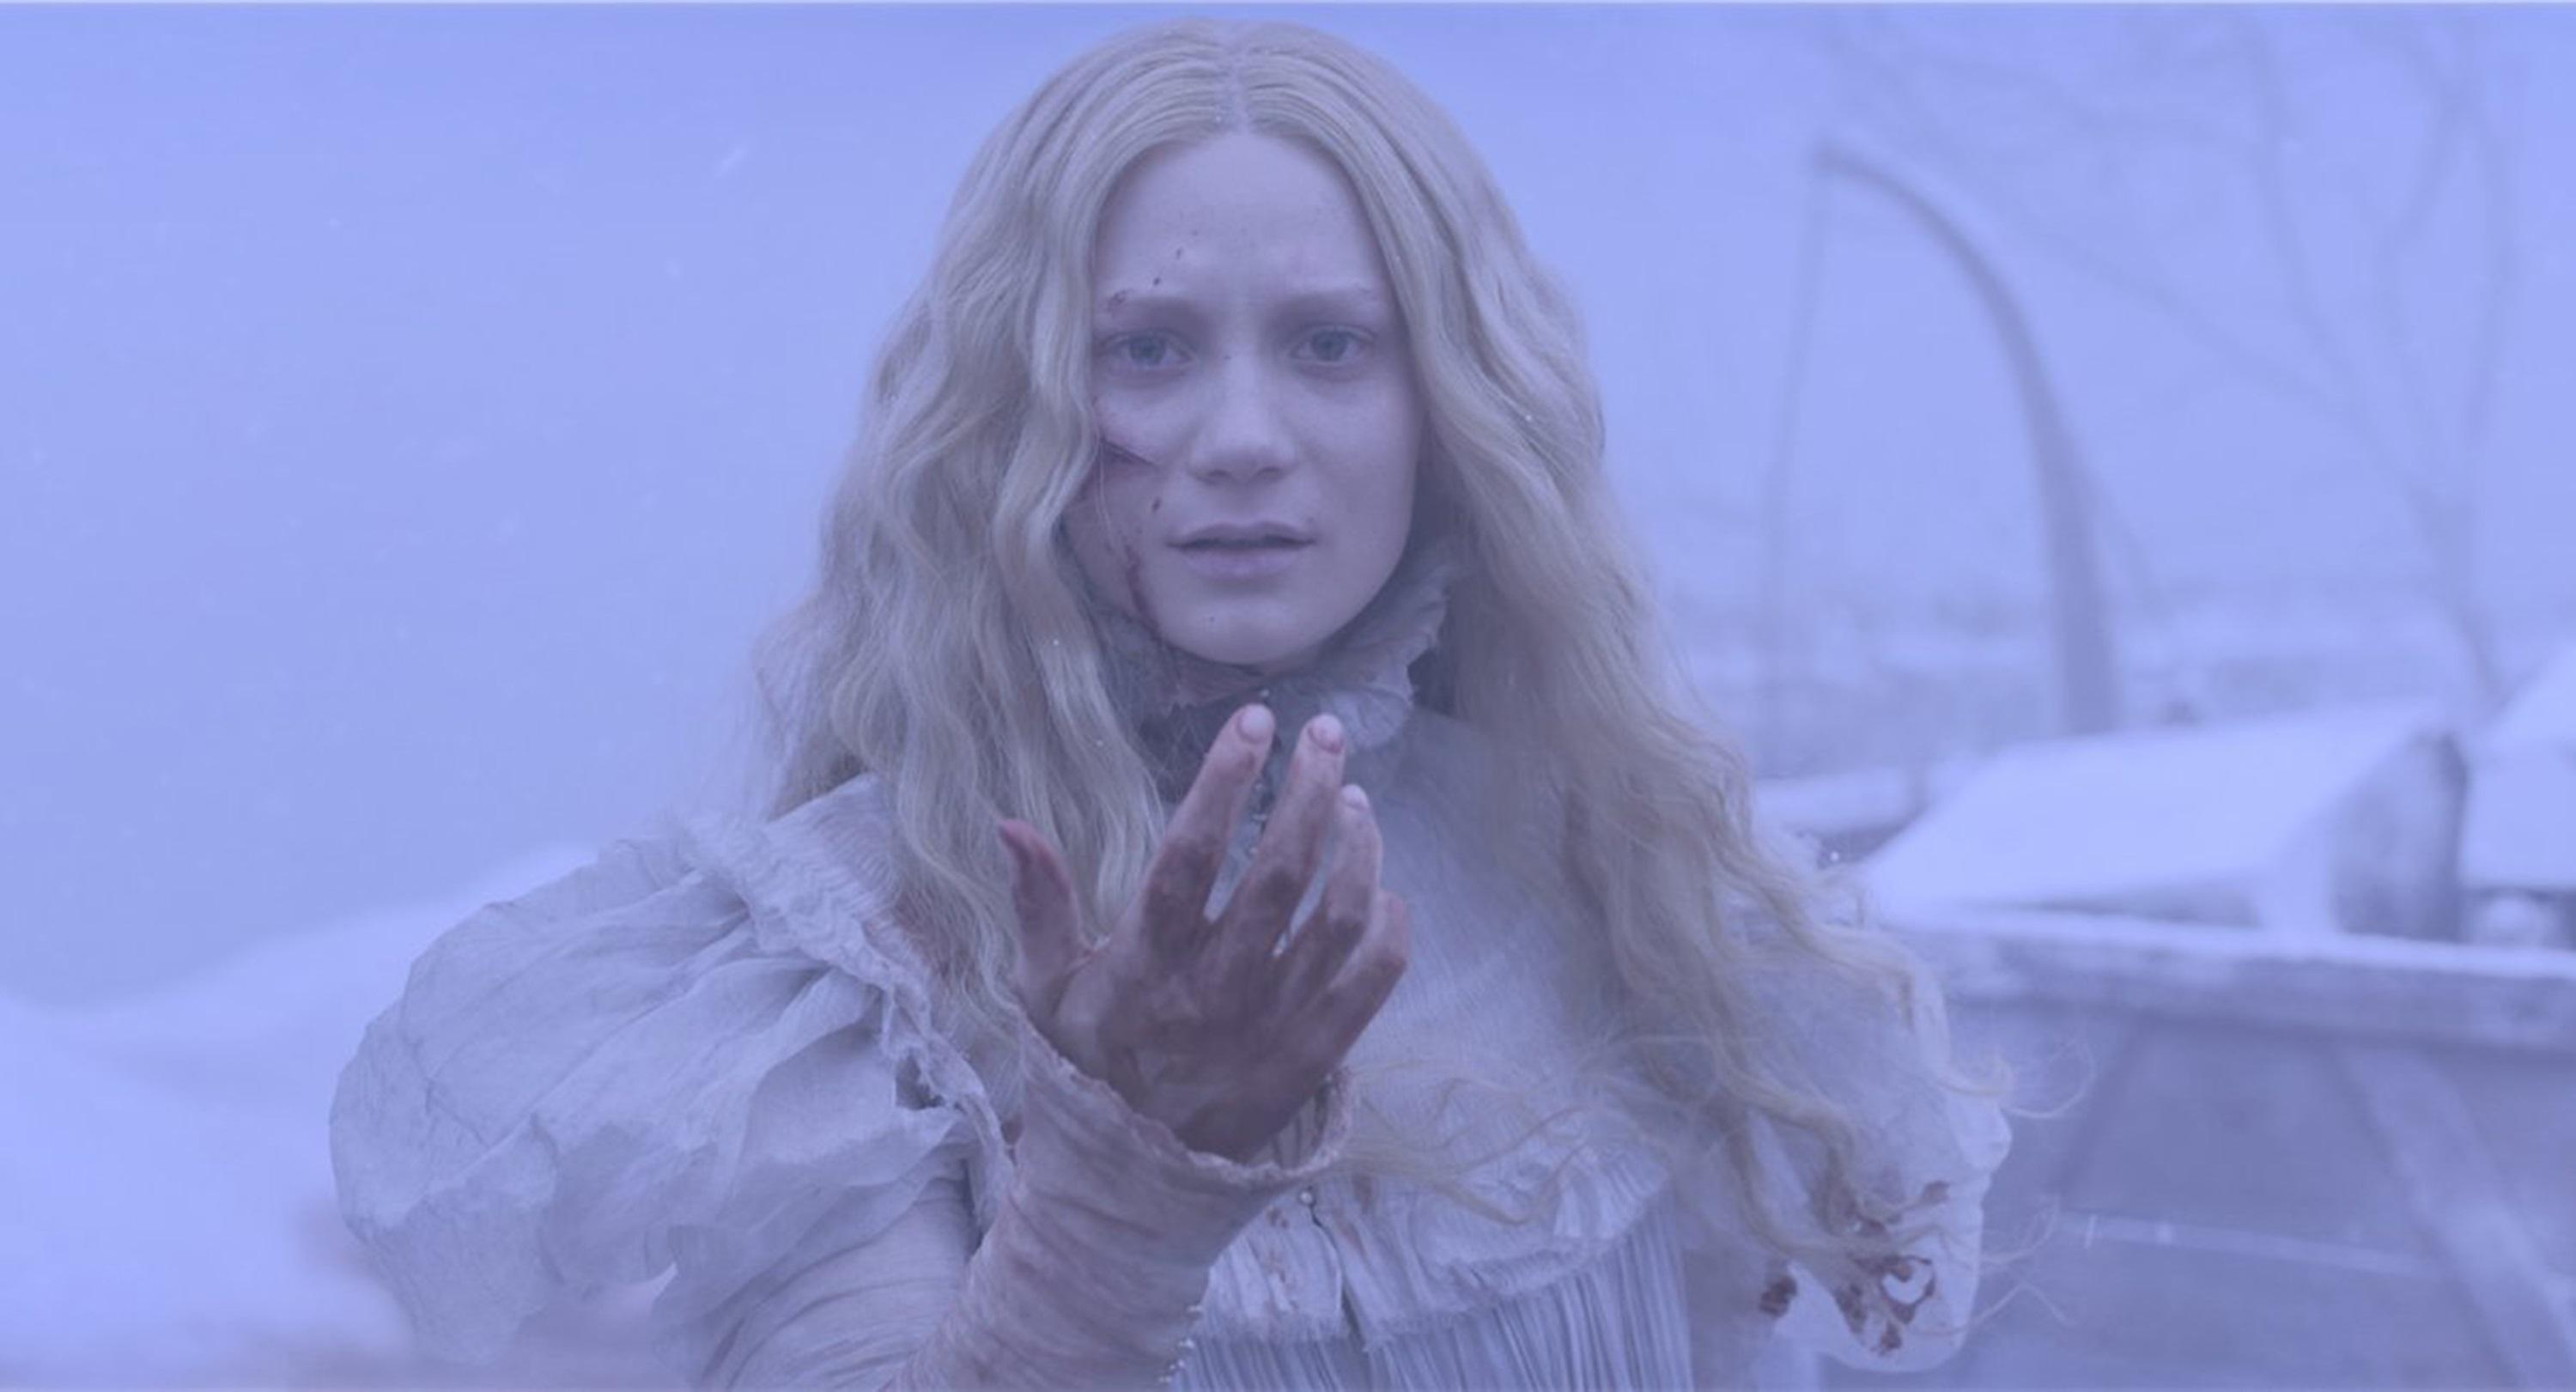 Mia Wasikowska embodies Edith Cushing in October release of 'Crimson Peak'   Photo Credit: MCT Campus